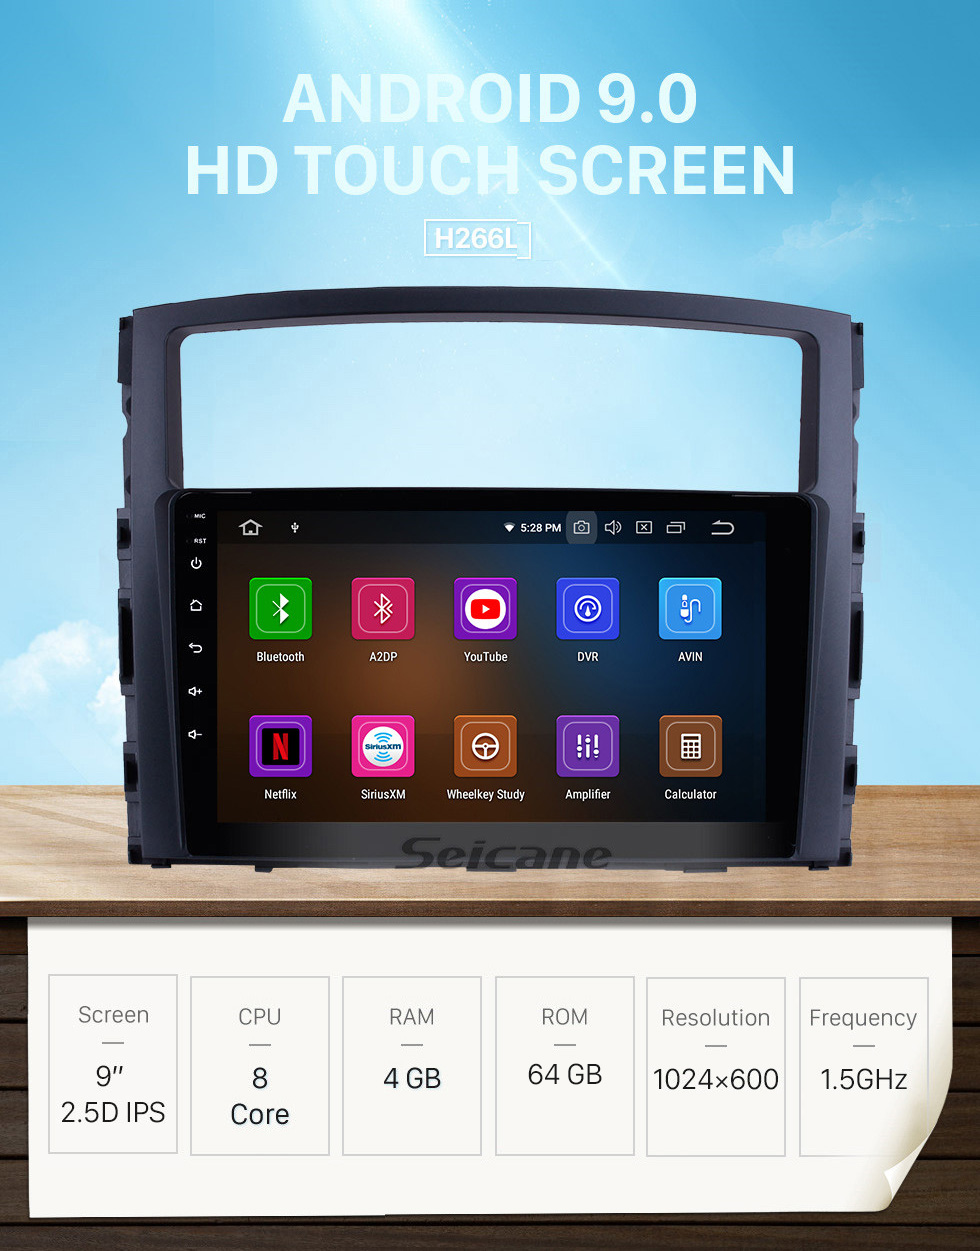 Seicane 9 inch Android 9.0 HD Touch Screen Radio GPS Navigation System for 2006-2017 MITSUBISHI PAJERO V97/V93 Support Bluetooth USB 3G/4G WIFI OBD2 Mirror Link Rearview Camera